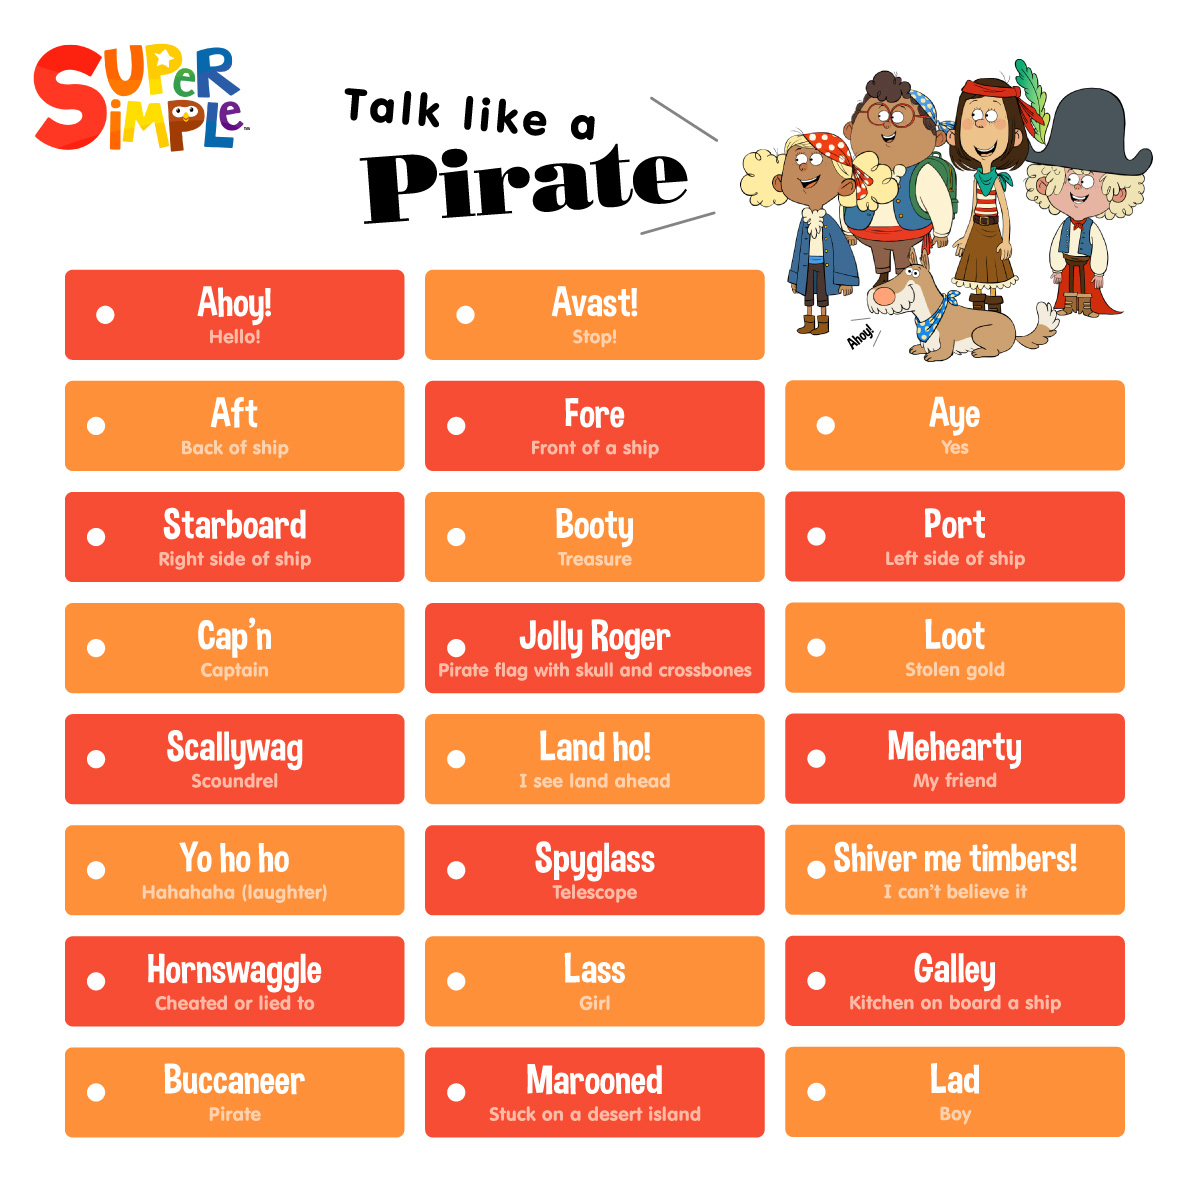 image about What's Your Pirate Name Printable named Allows Master Regarding Pirate Ships - and Produce Our Personalized! - Tremendous